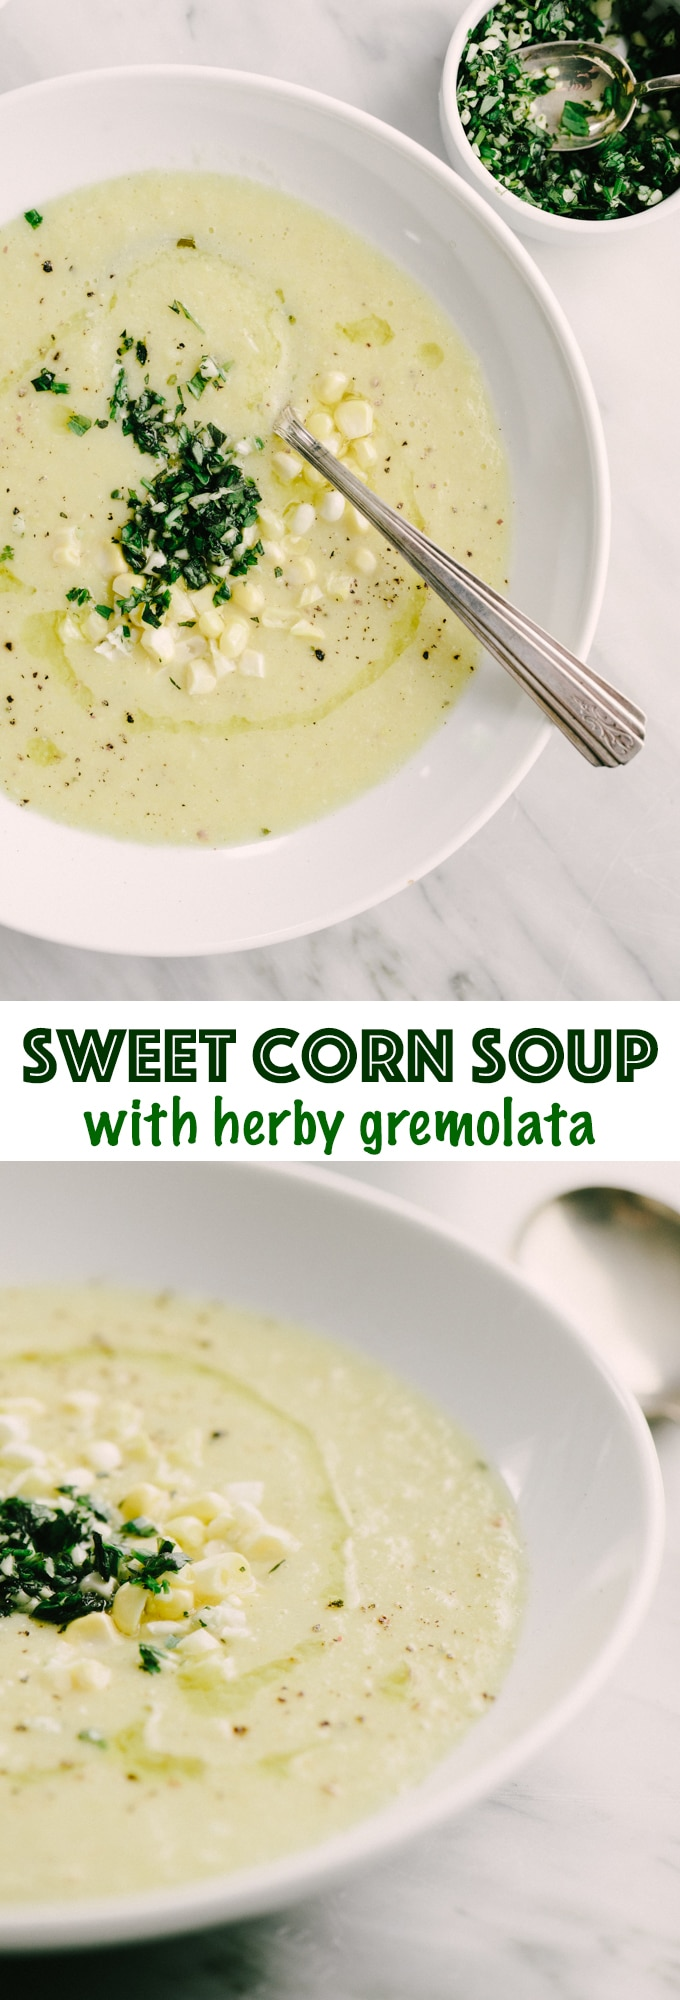 This recipe for sweet corn soup is everything I love about summer - tender sweet corn, fresh herbs, and bright flavor. It's an easy, whole food, weeknight recipe that is naturally vegetarian and gluten-free. #healthy #wholefood #realfood #vegetarian